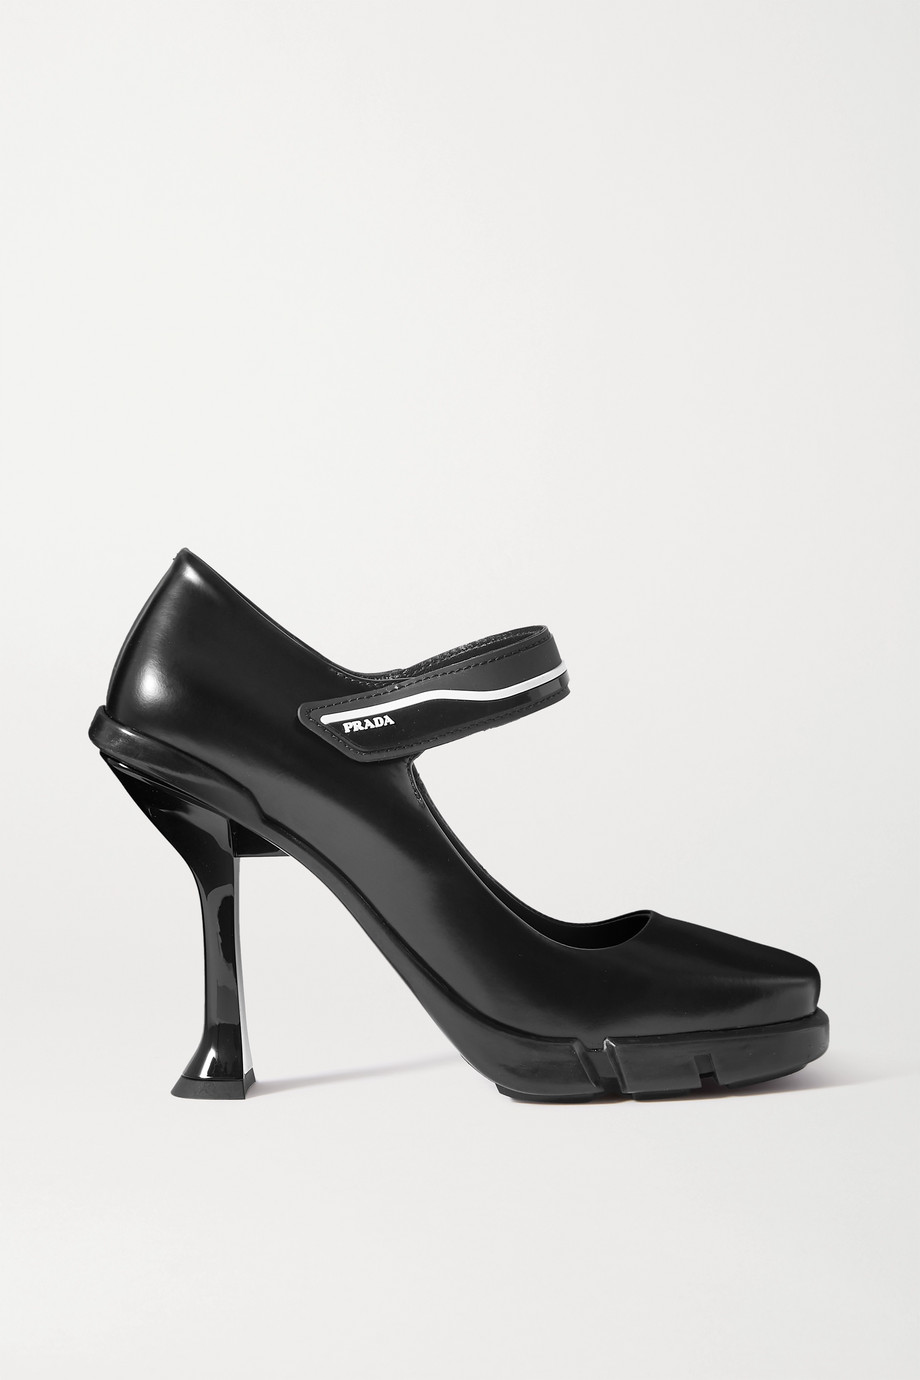 Prada 105 logo-detailed leather pumps